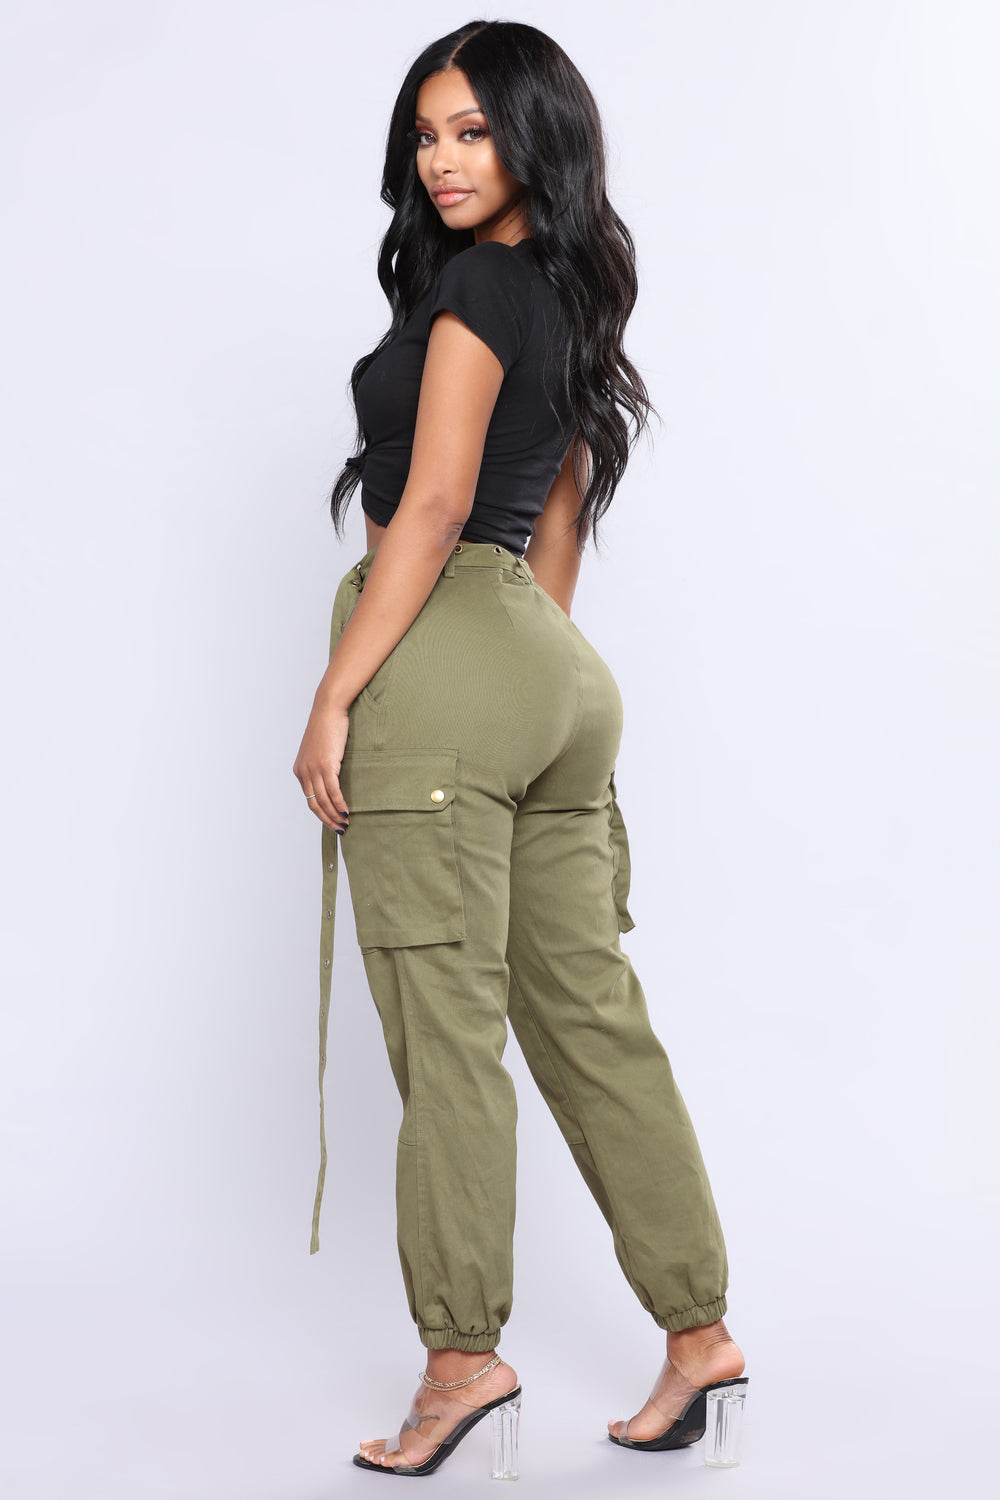 The Chic Curve Seattle Fashion: Cargo Chic Pants